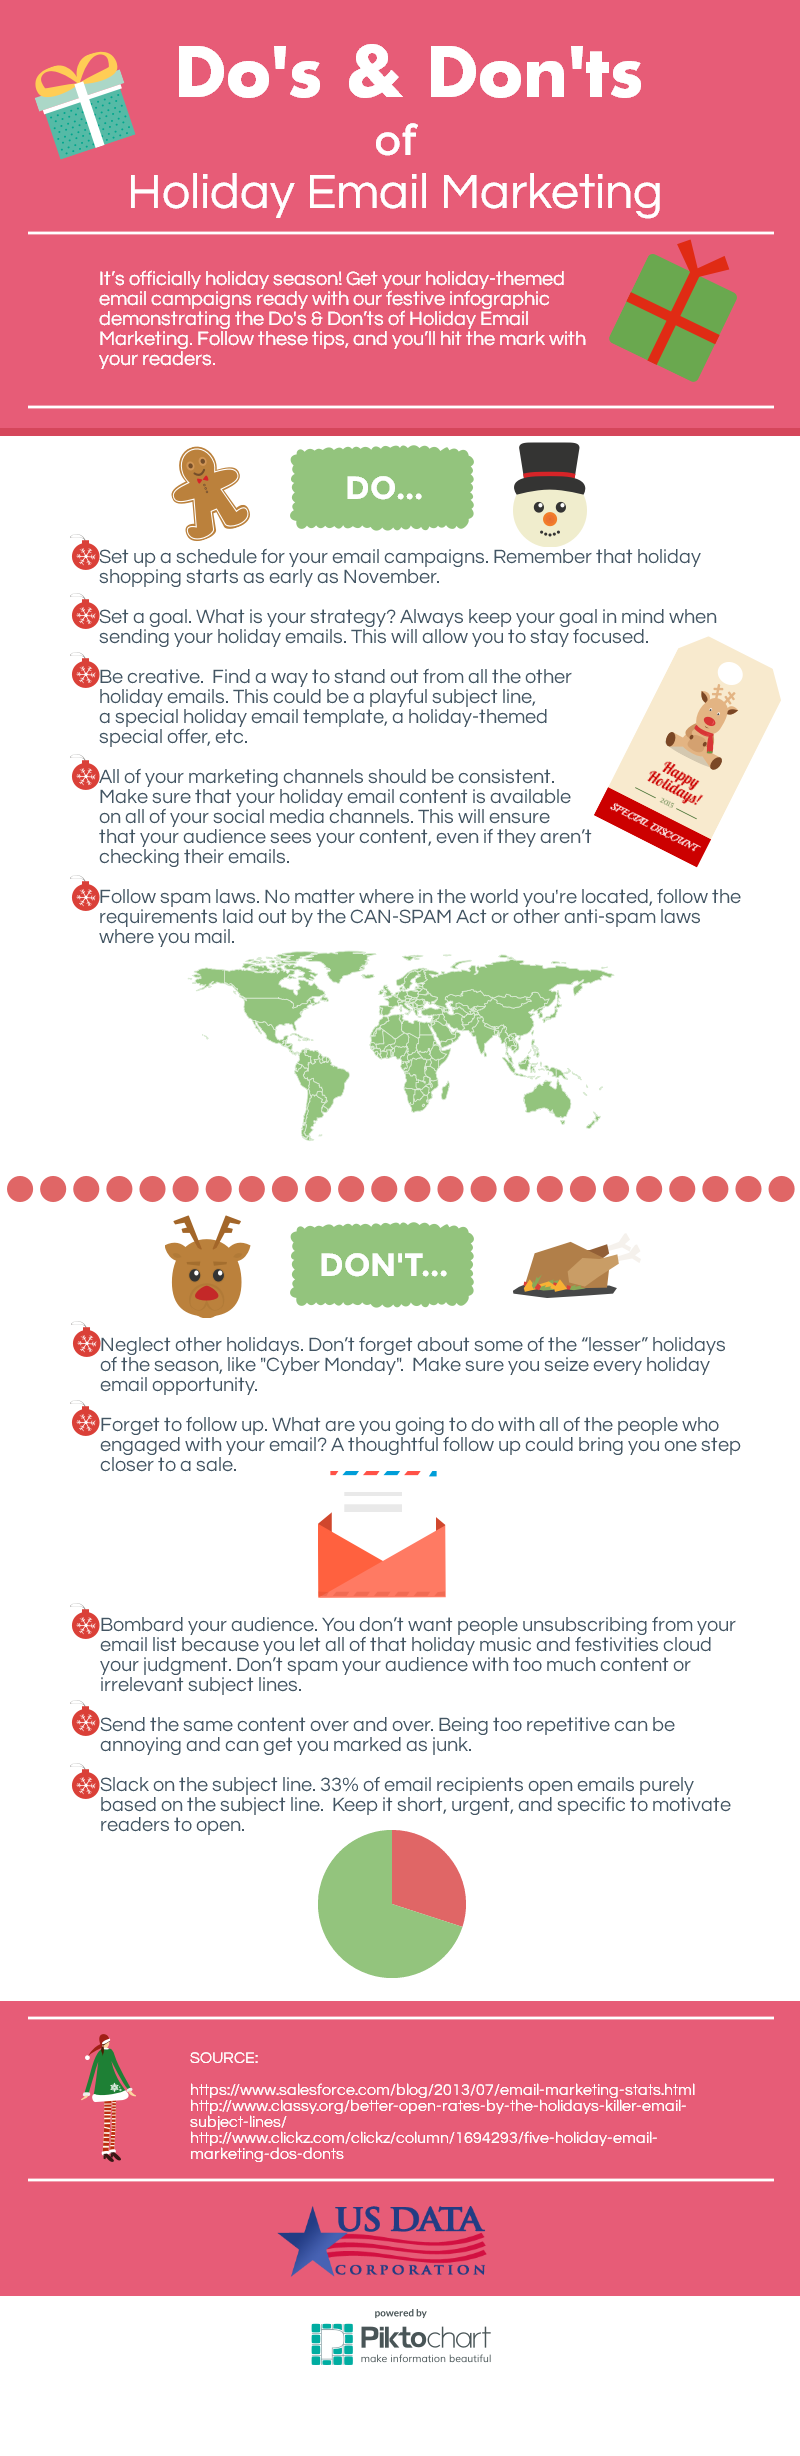 The DoS And DonTs Of Holiday Email Marketing Made Easy By Us